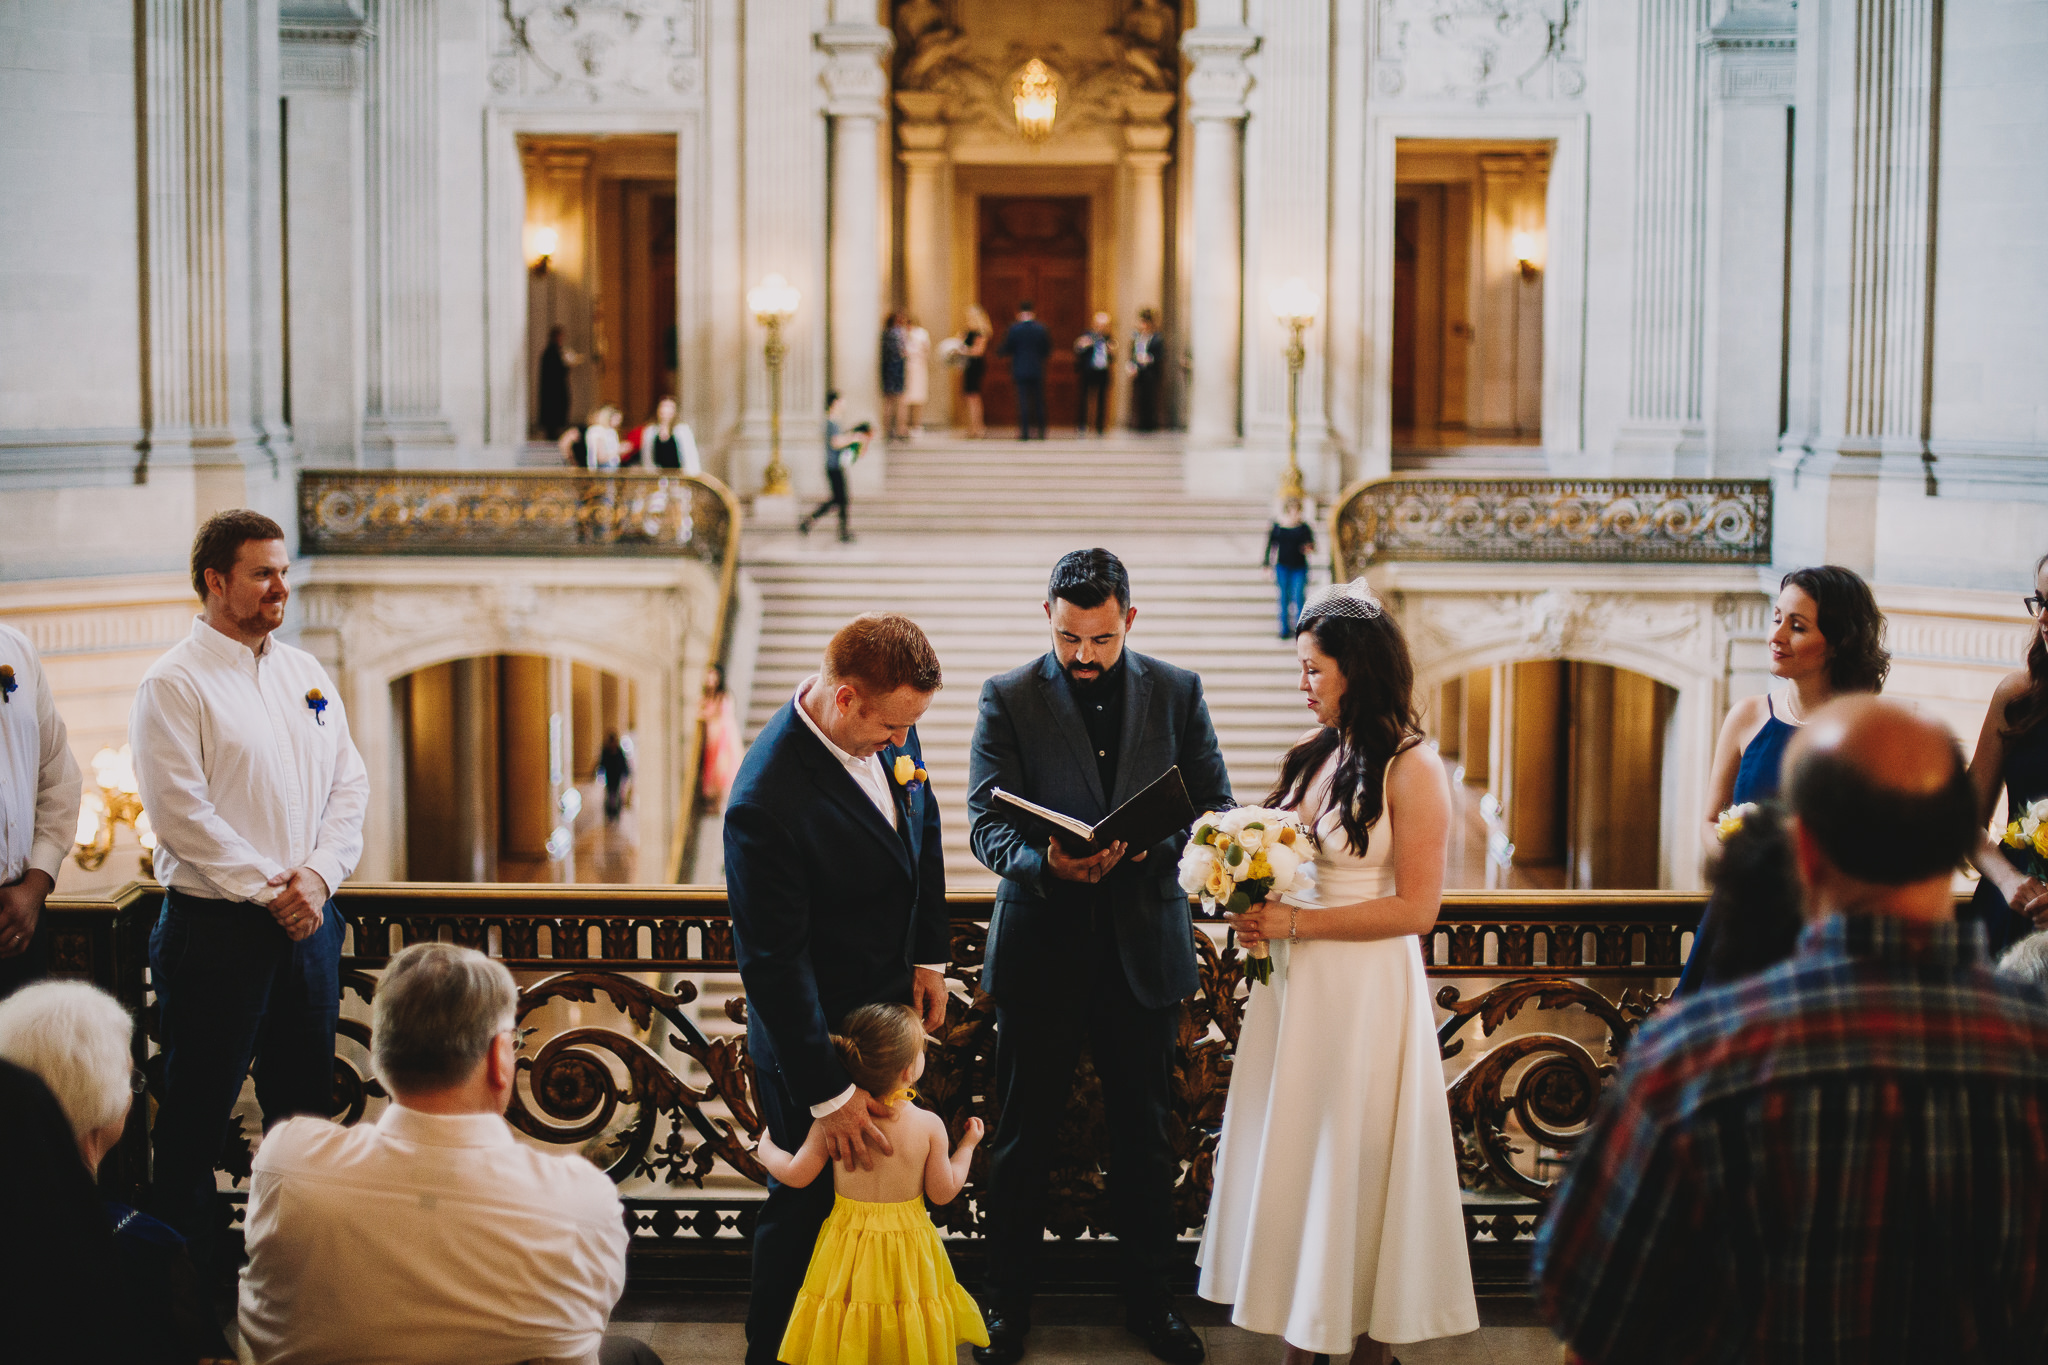 Archer Inspired Photography SF City Hall Elopement Wedding Lifestyle Documentary Affordable Photographer-72.jpg